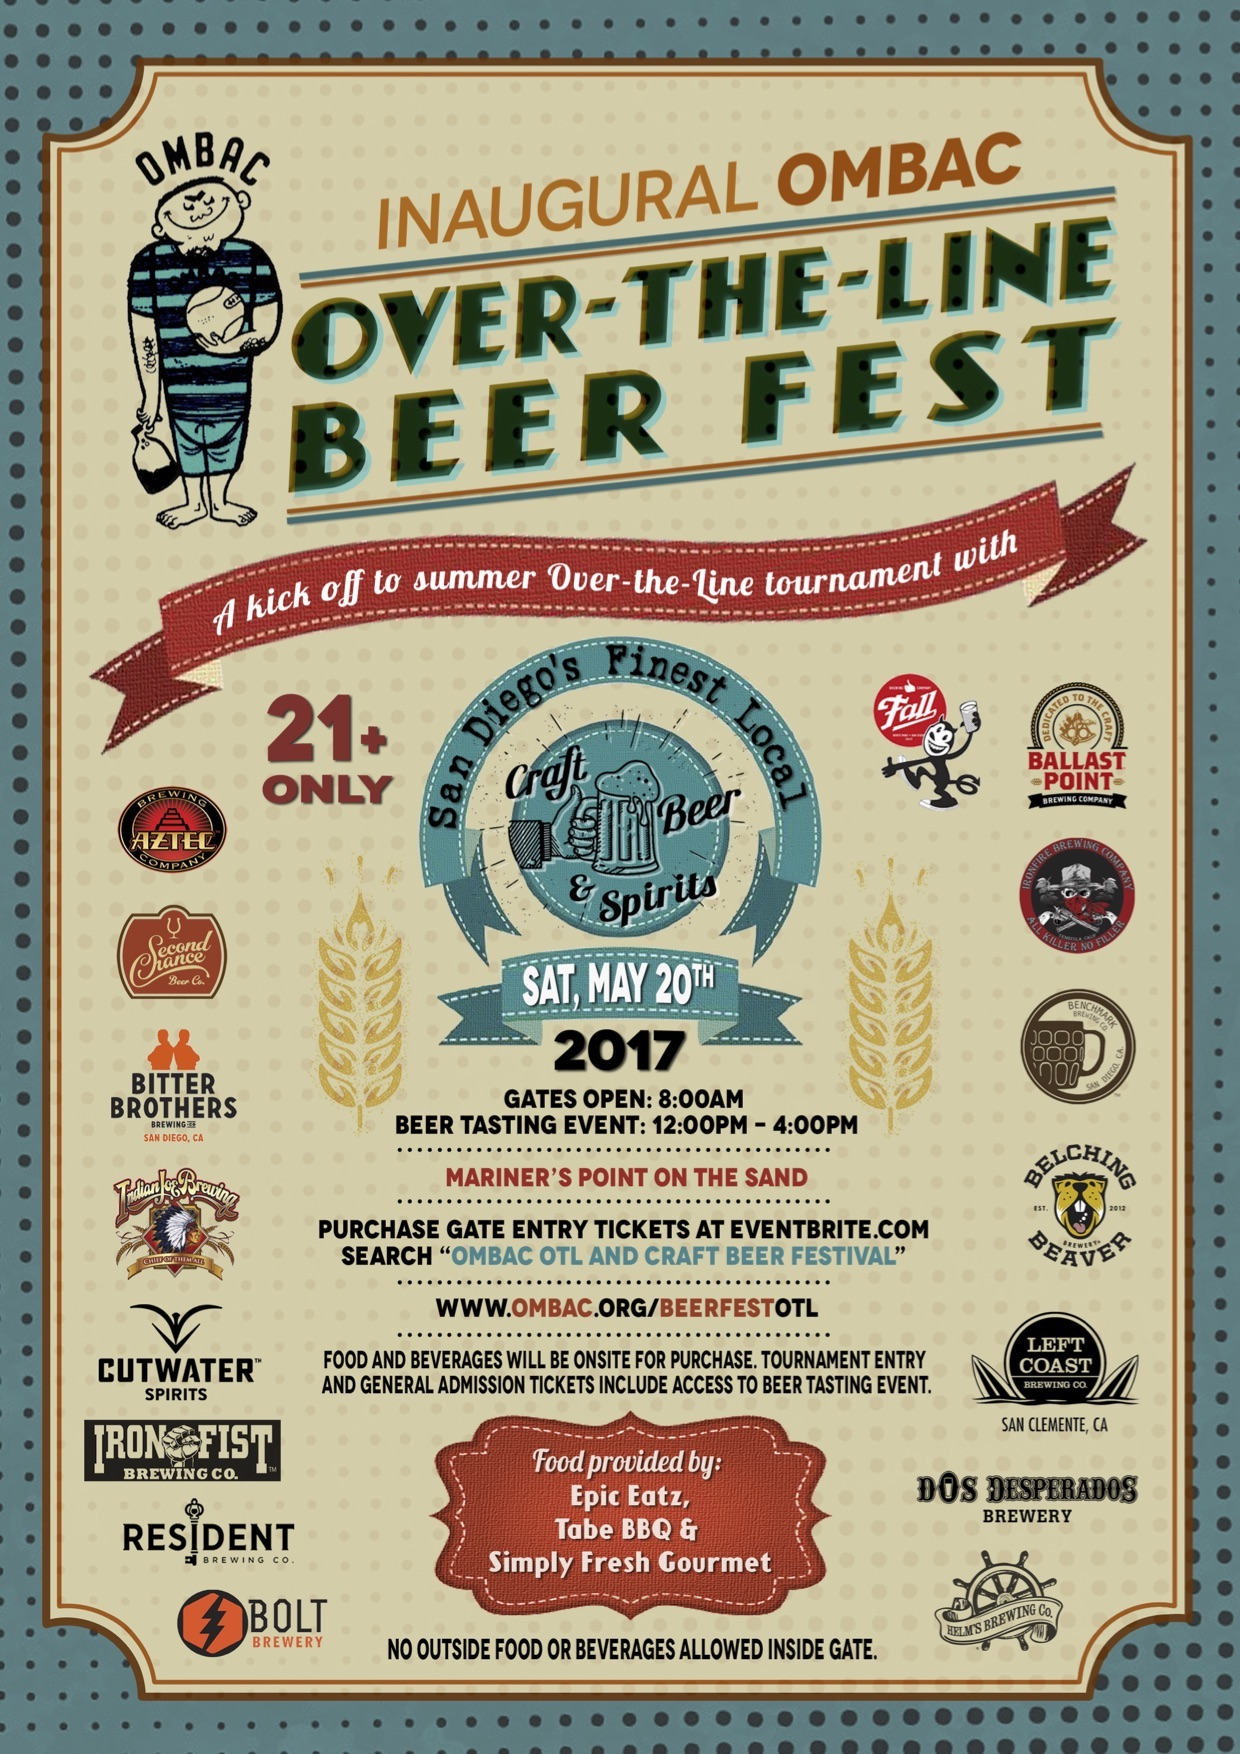 Over the line, san diego, OMBAC, Craft beer Fest